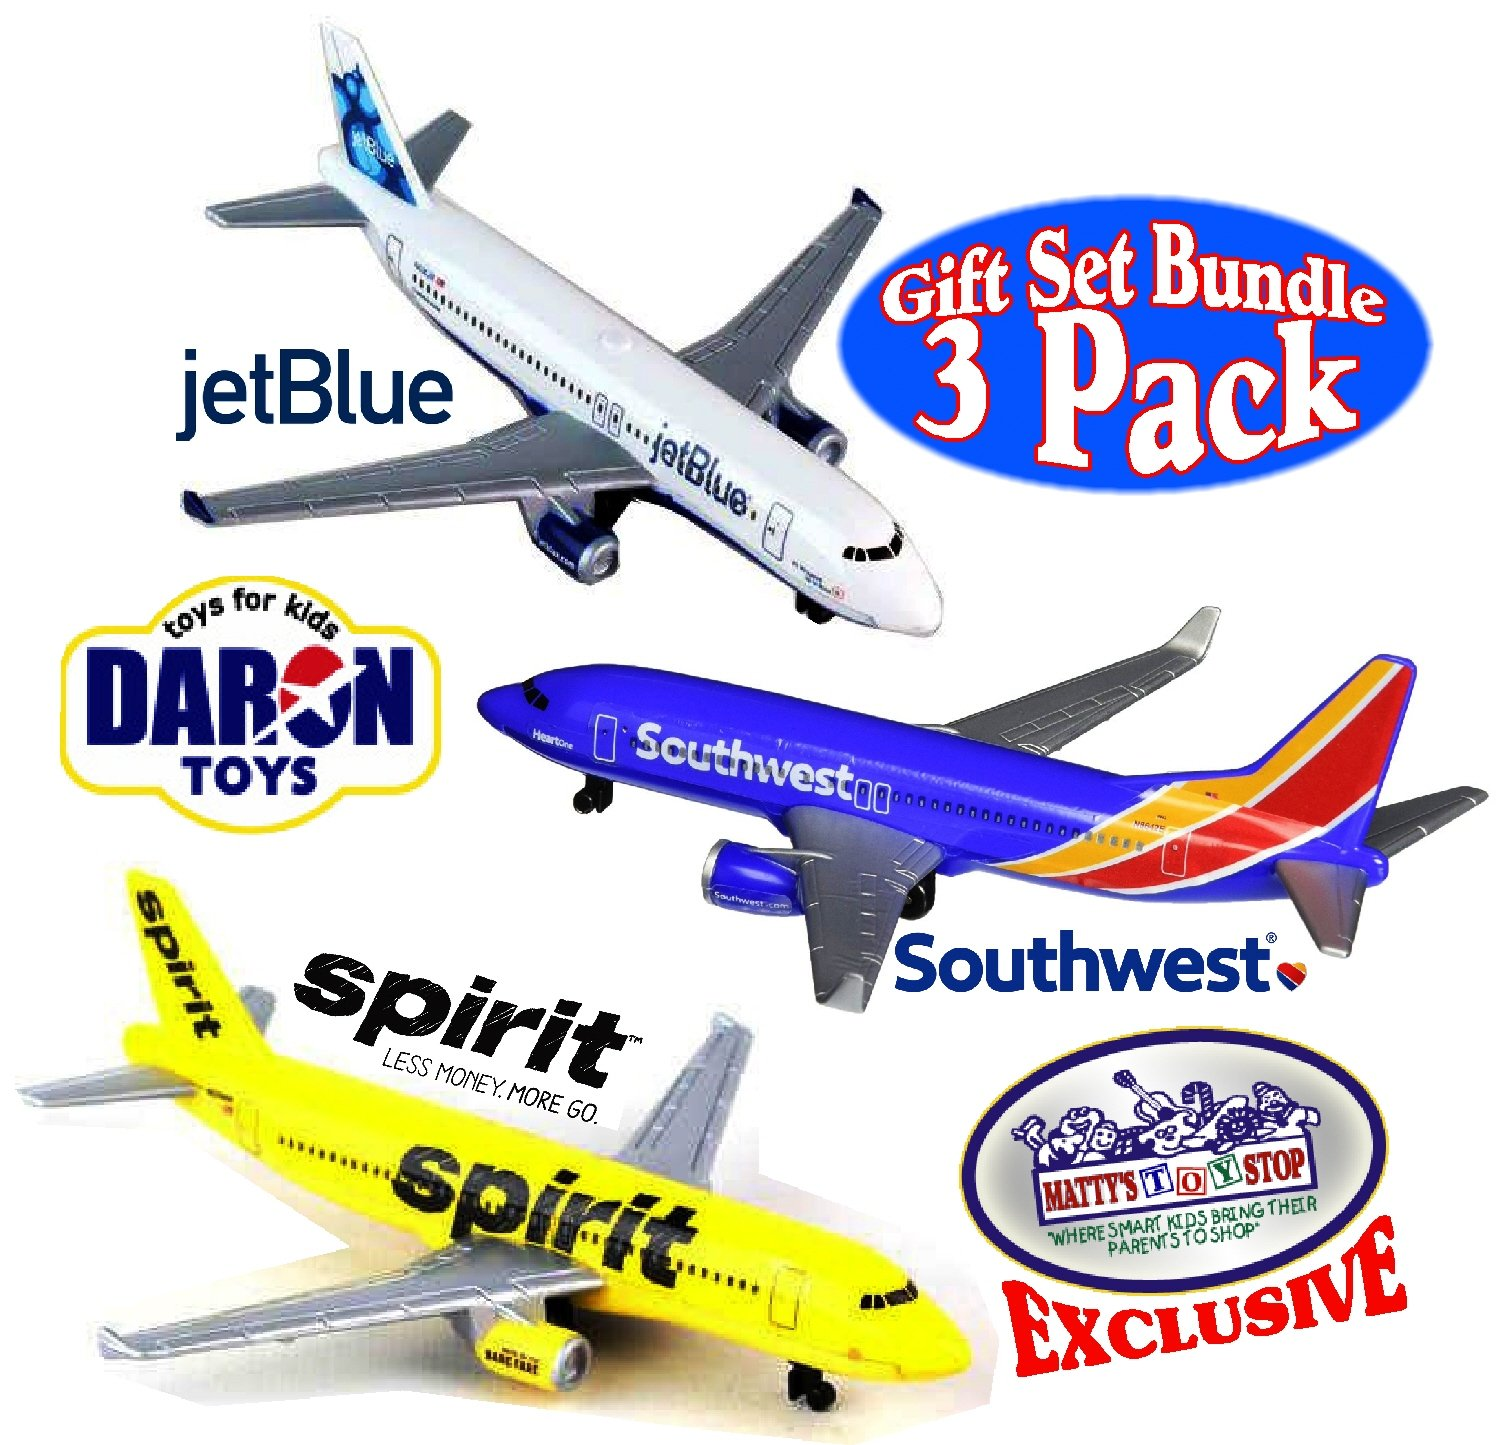 Daron Southwest, JetBlue & Spirit Airlines Die-cast Planes Matty's Toy Stop Exclusive Gift Set Bundle - 3 Pack